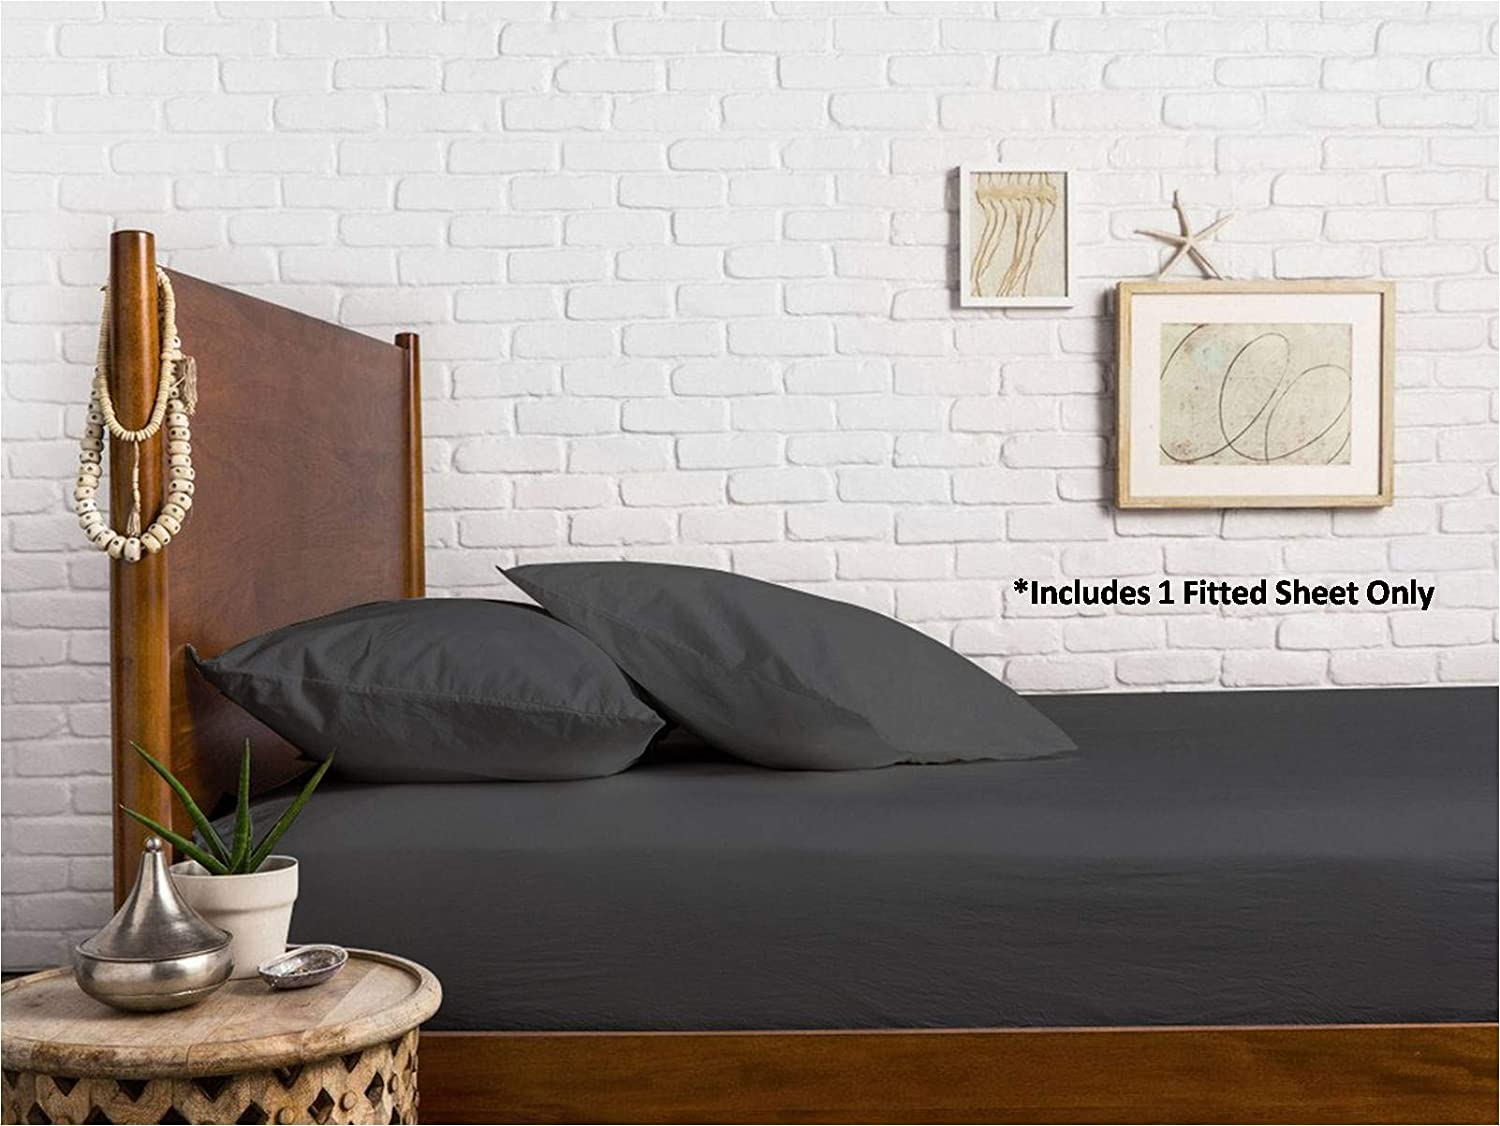 Fits Mattress Upto 18 Deep Pockets White Comfy Sheets 100/% Egyptian Cotton Sateen Weave 1000 Thread Count California King Fitted Sheet with Elastic All Around